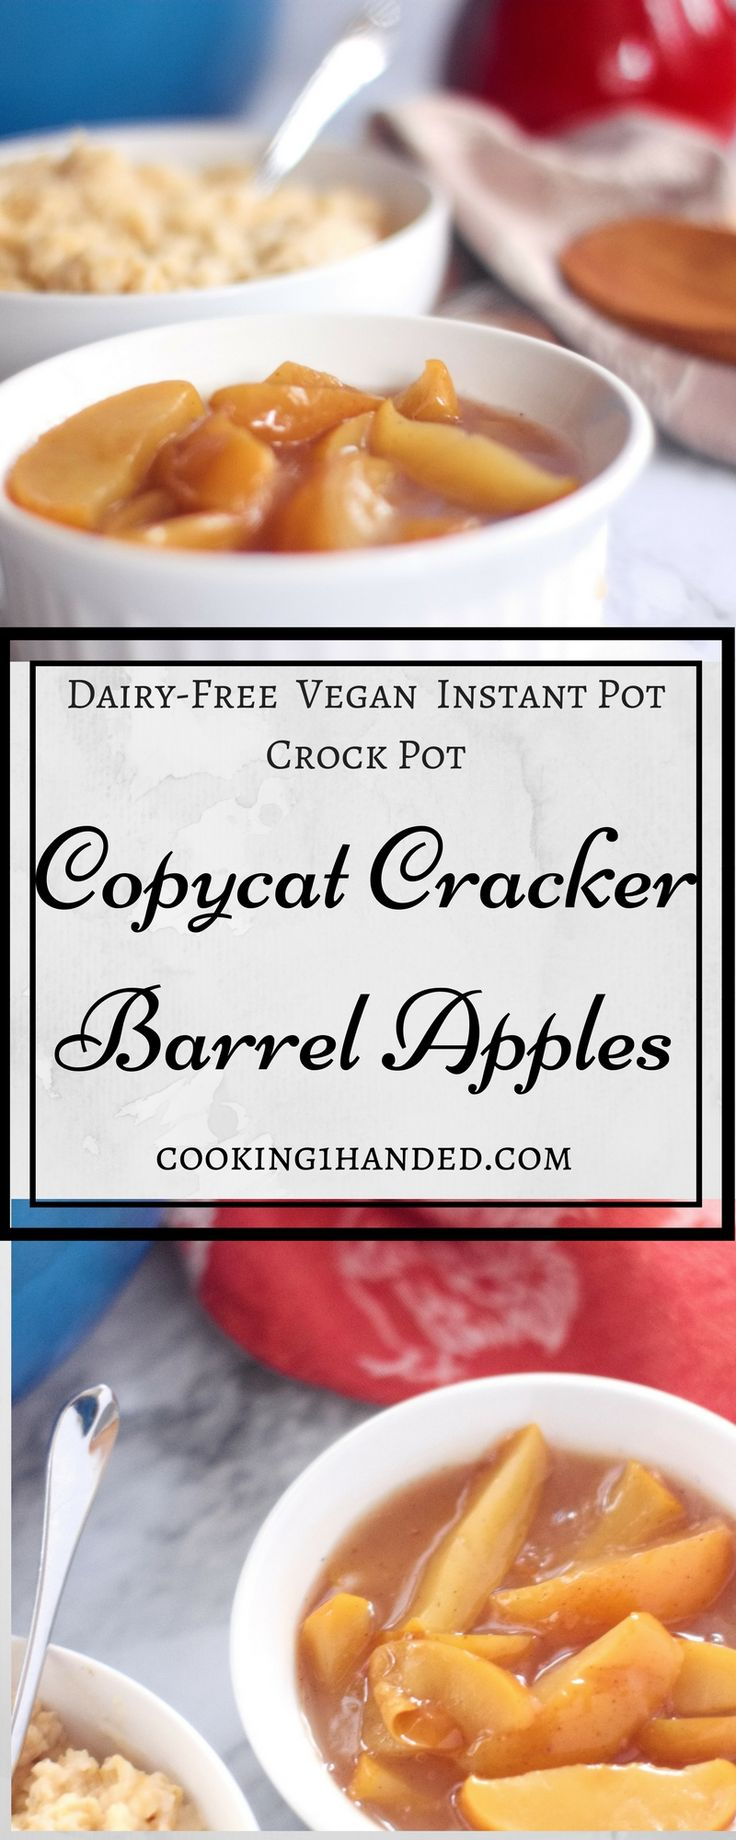 These copycat cracker barrel apple slices can be made in the crock pot, instant pot, or stove top. The best part? They're easy, vegan, dairy free, and gluten free. Perfect for any allergy, they make breakfast special. A great side dish for pork chops too.